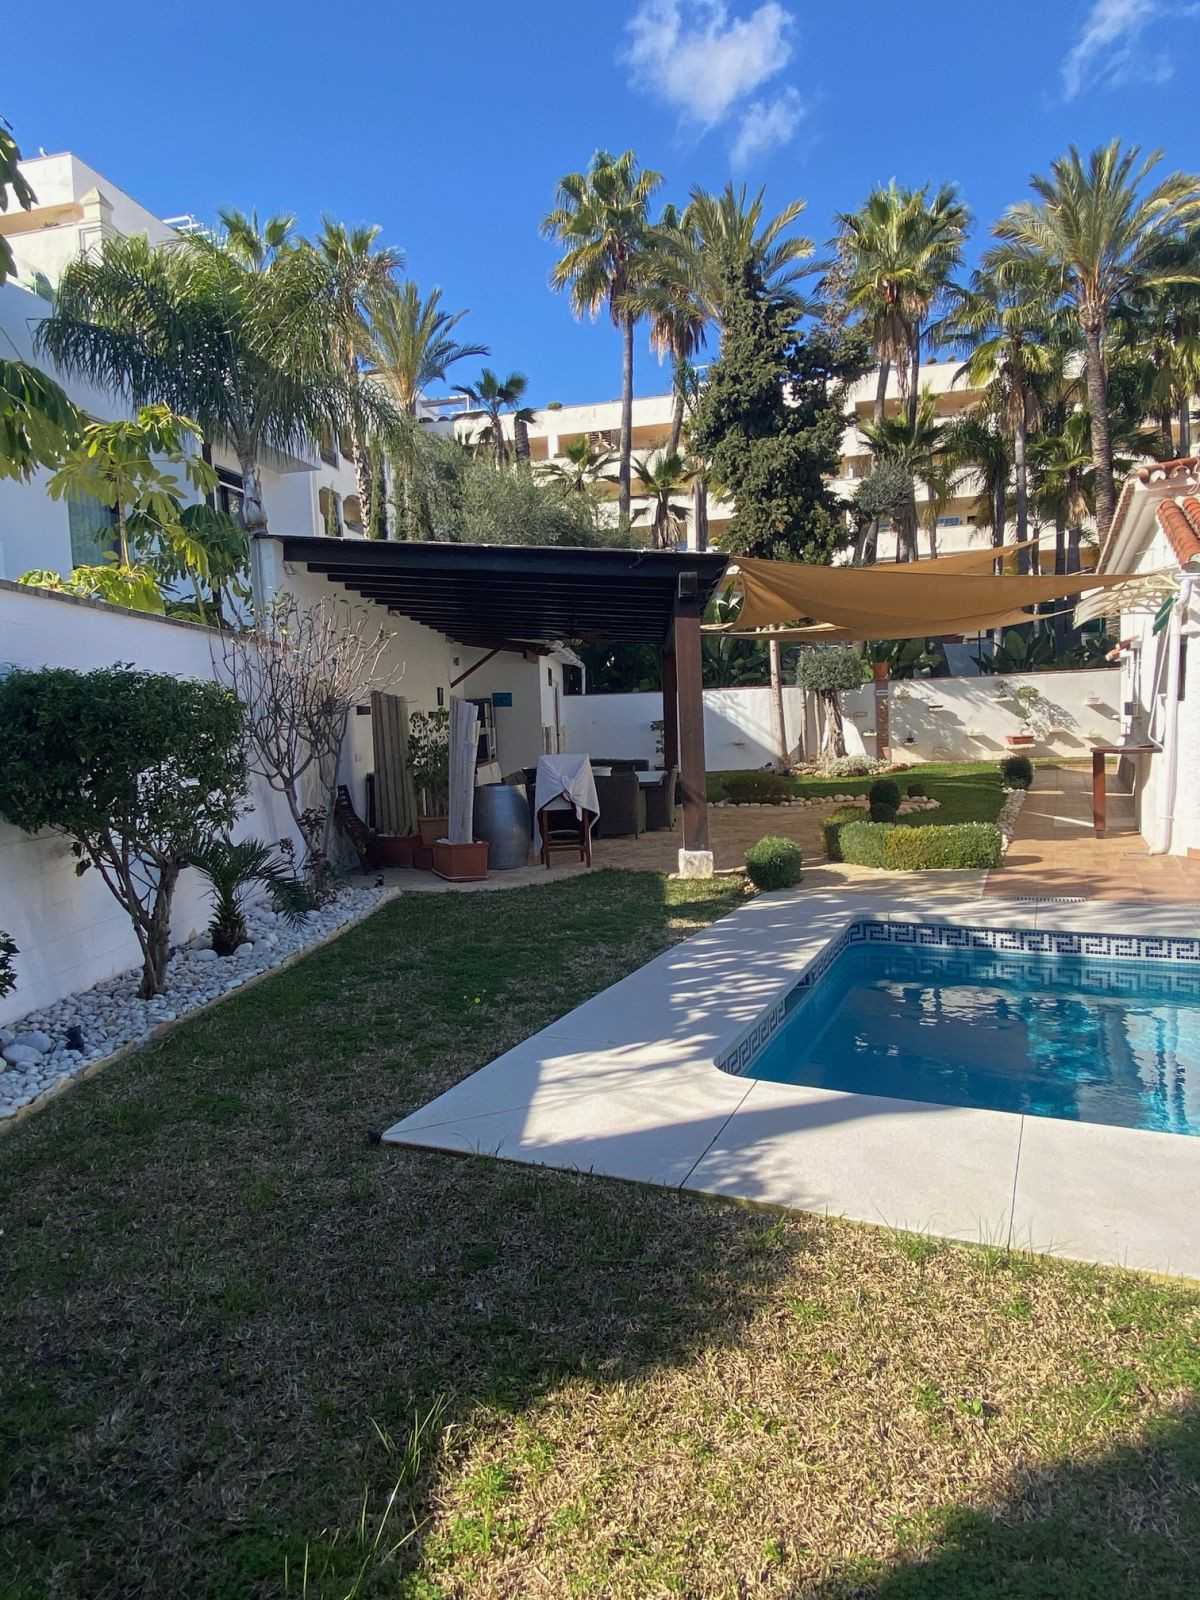 3 bedroom villa located in a well established beachside urbanization with easy access to the beach a,Spain